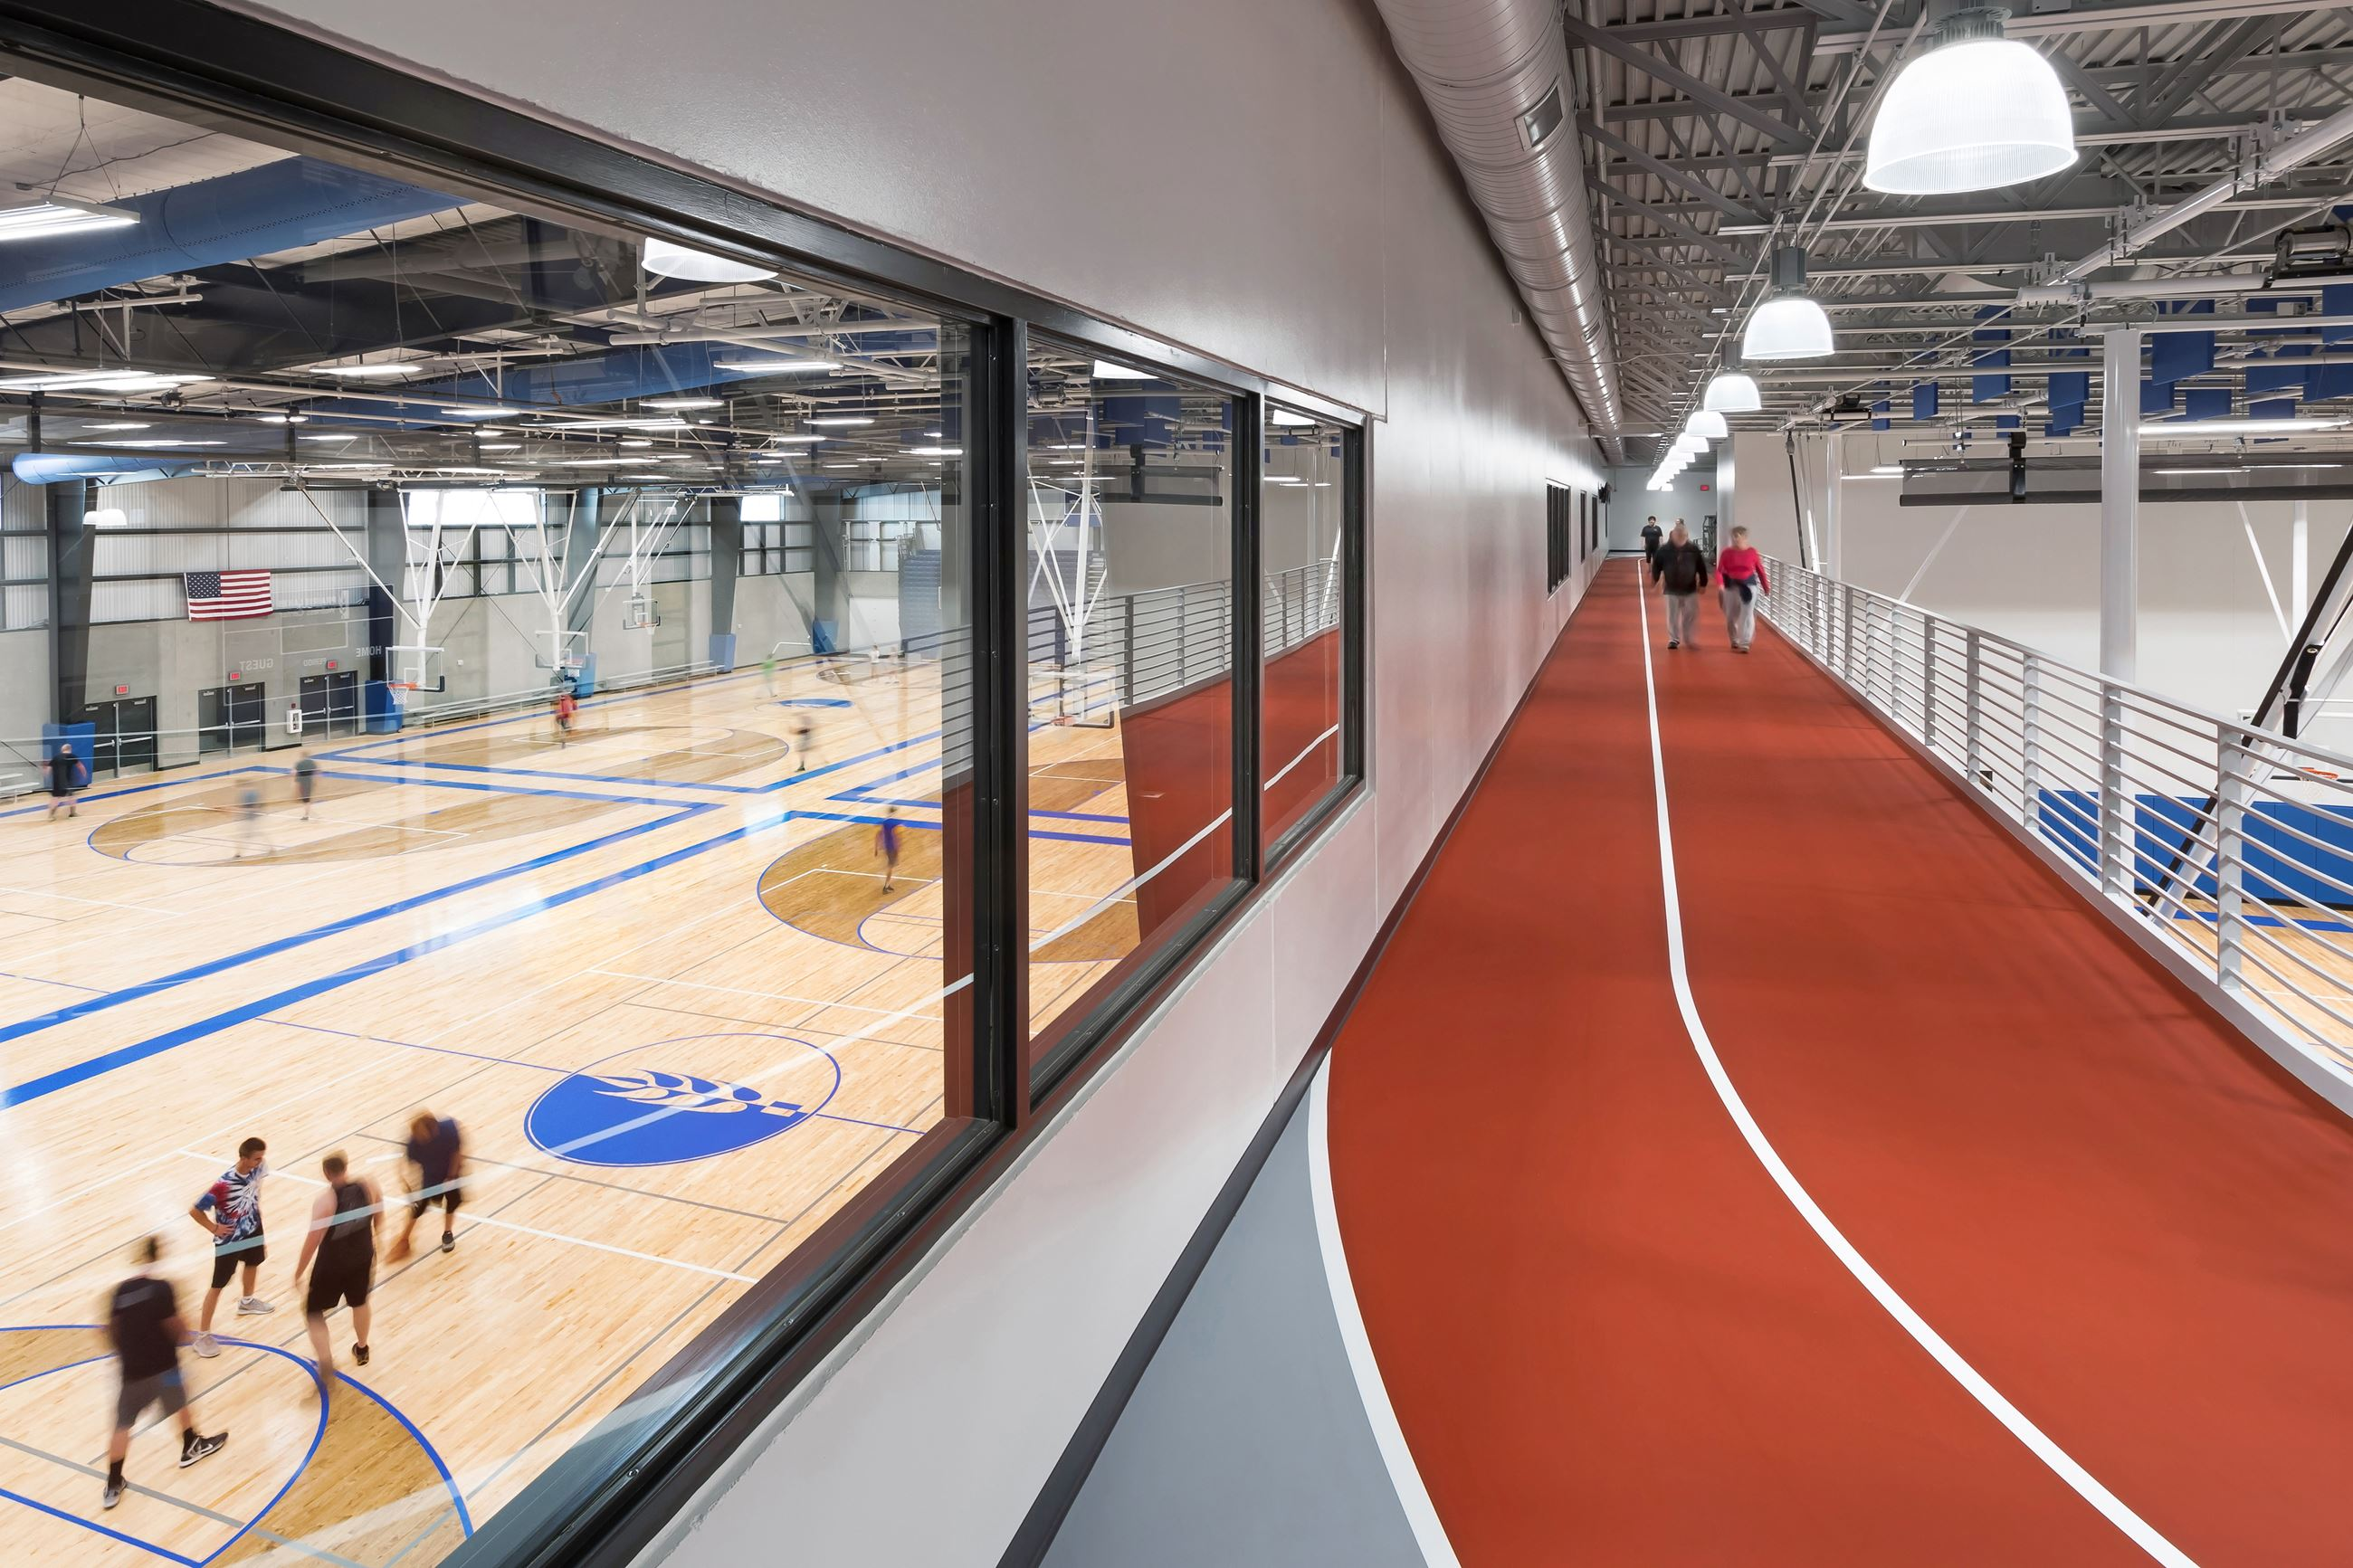 An indoor running track alongside an indoor basketball court where people are playing